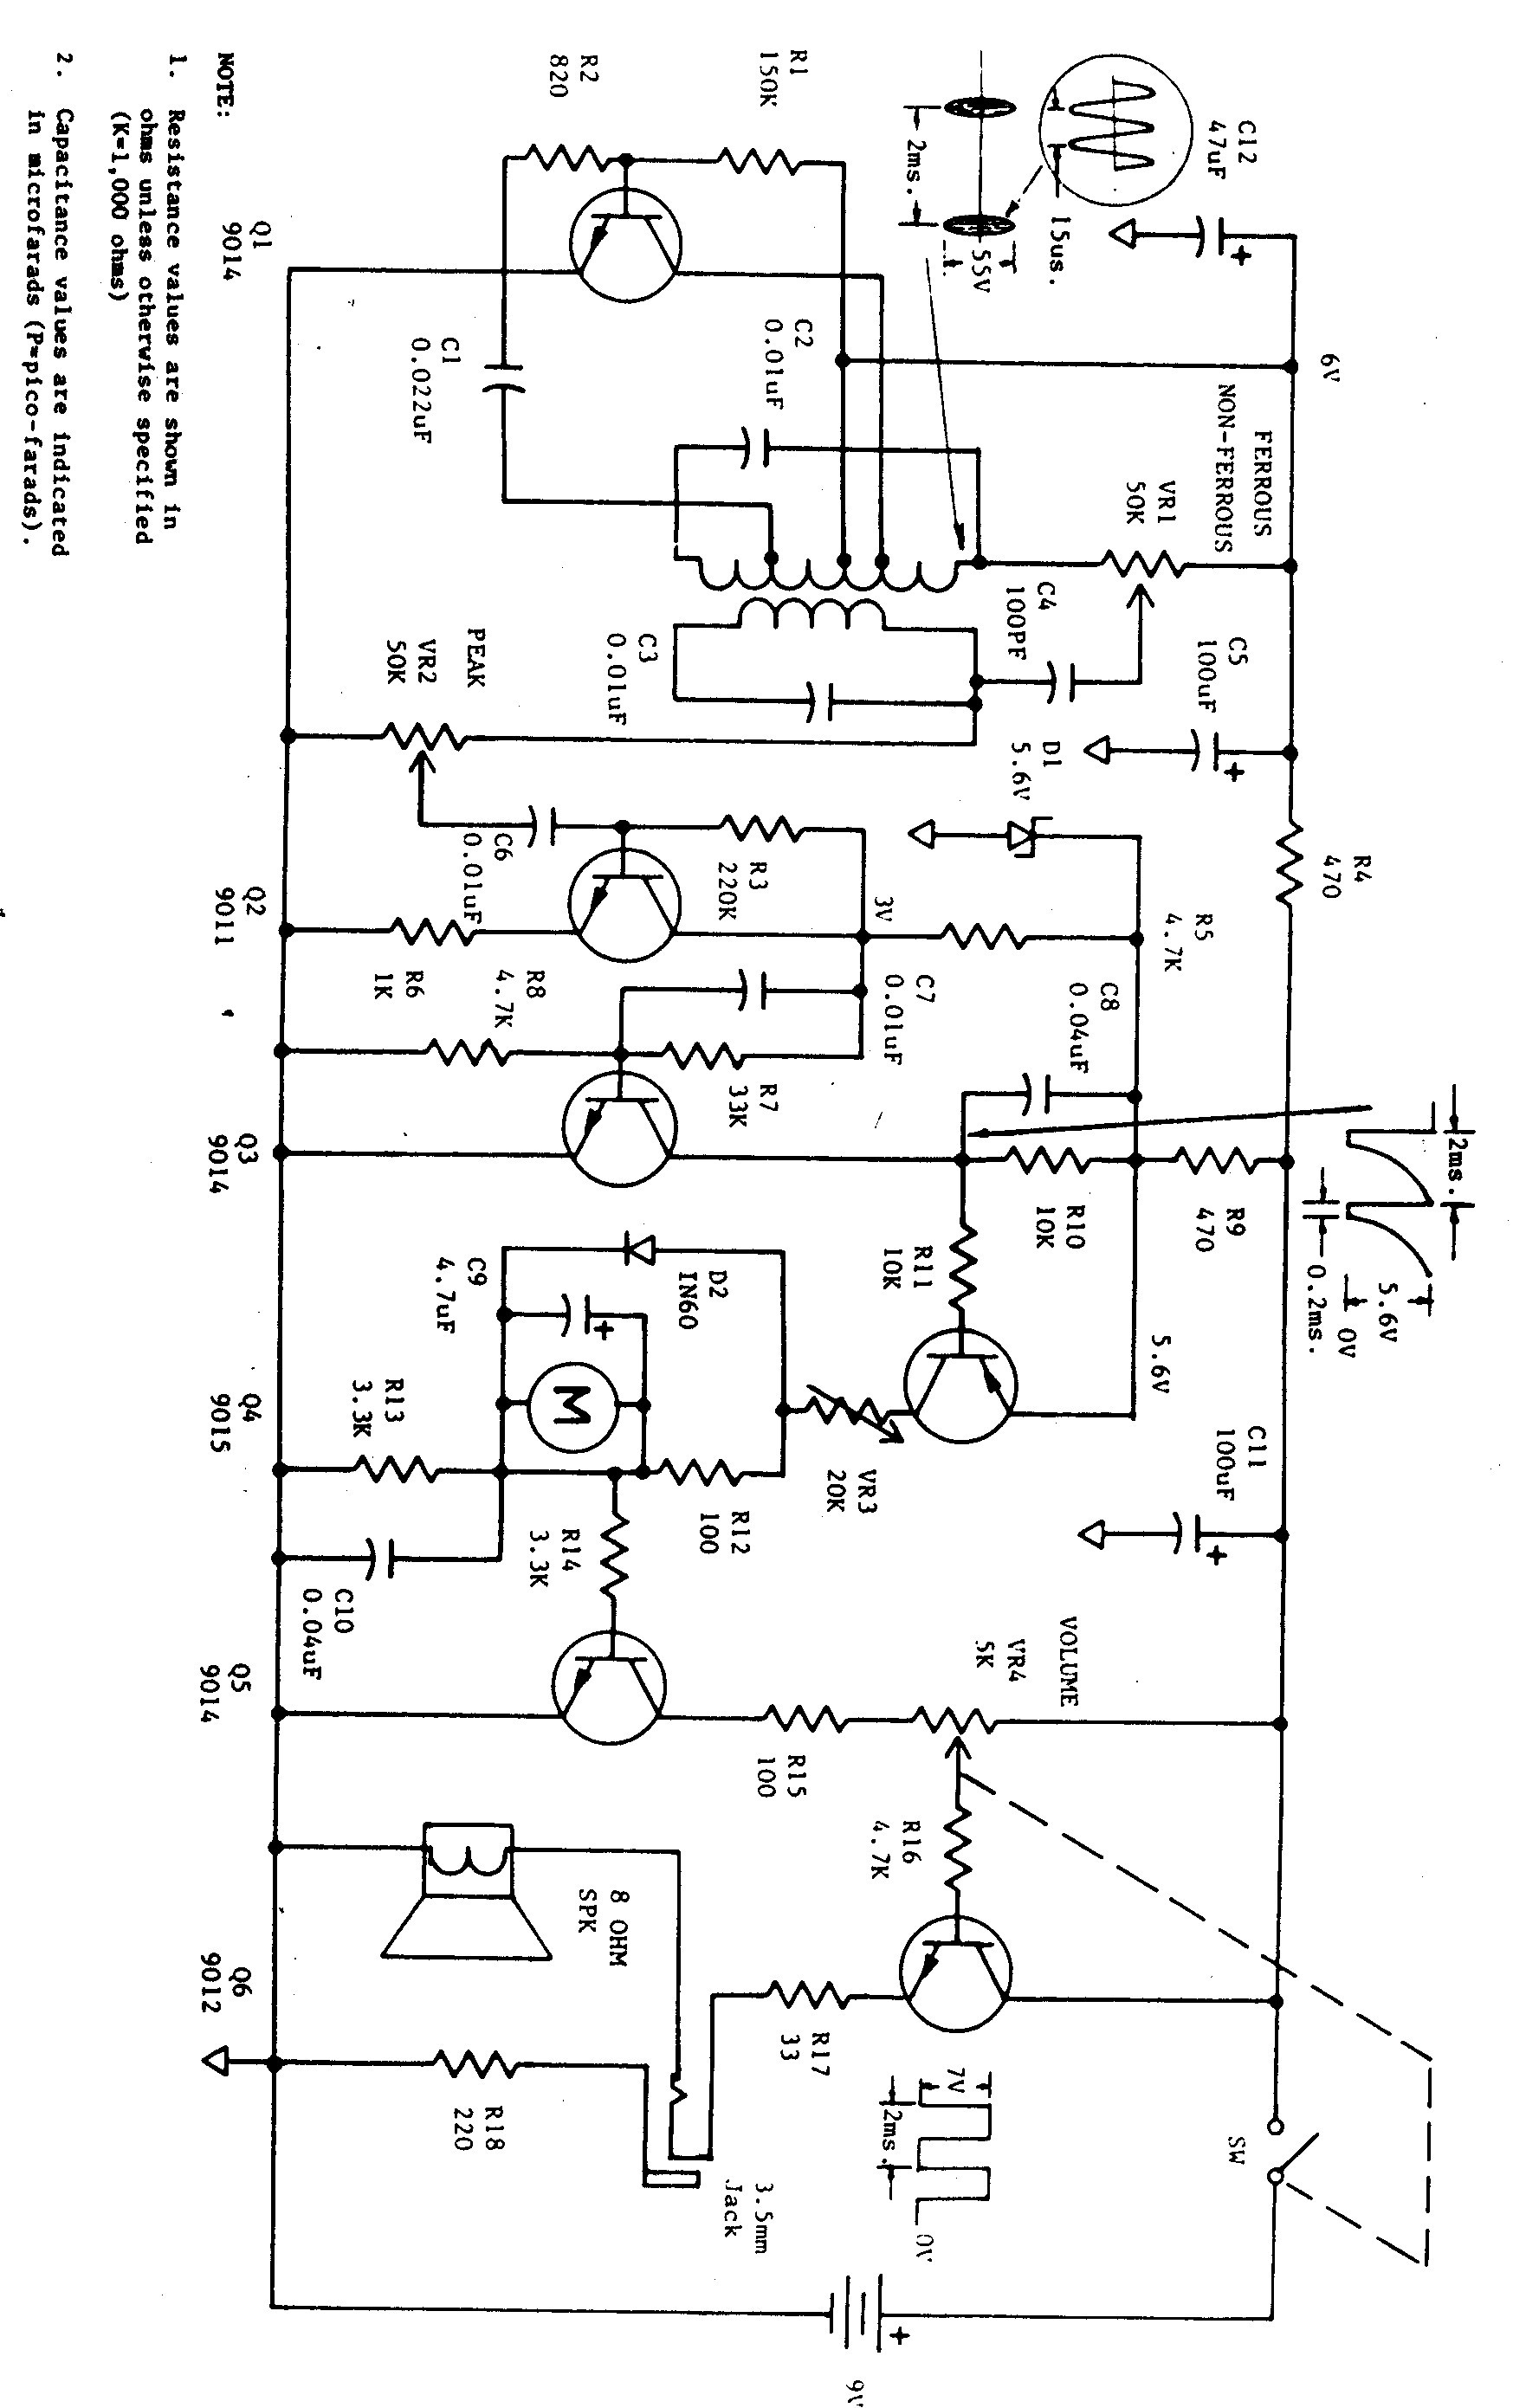 [DIAGRAM] 2001 Delco Radio Wiring Diagram Wiring Diagram